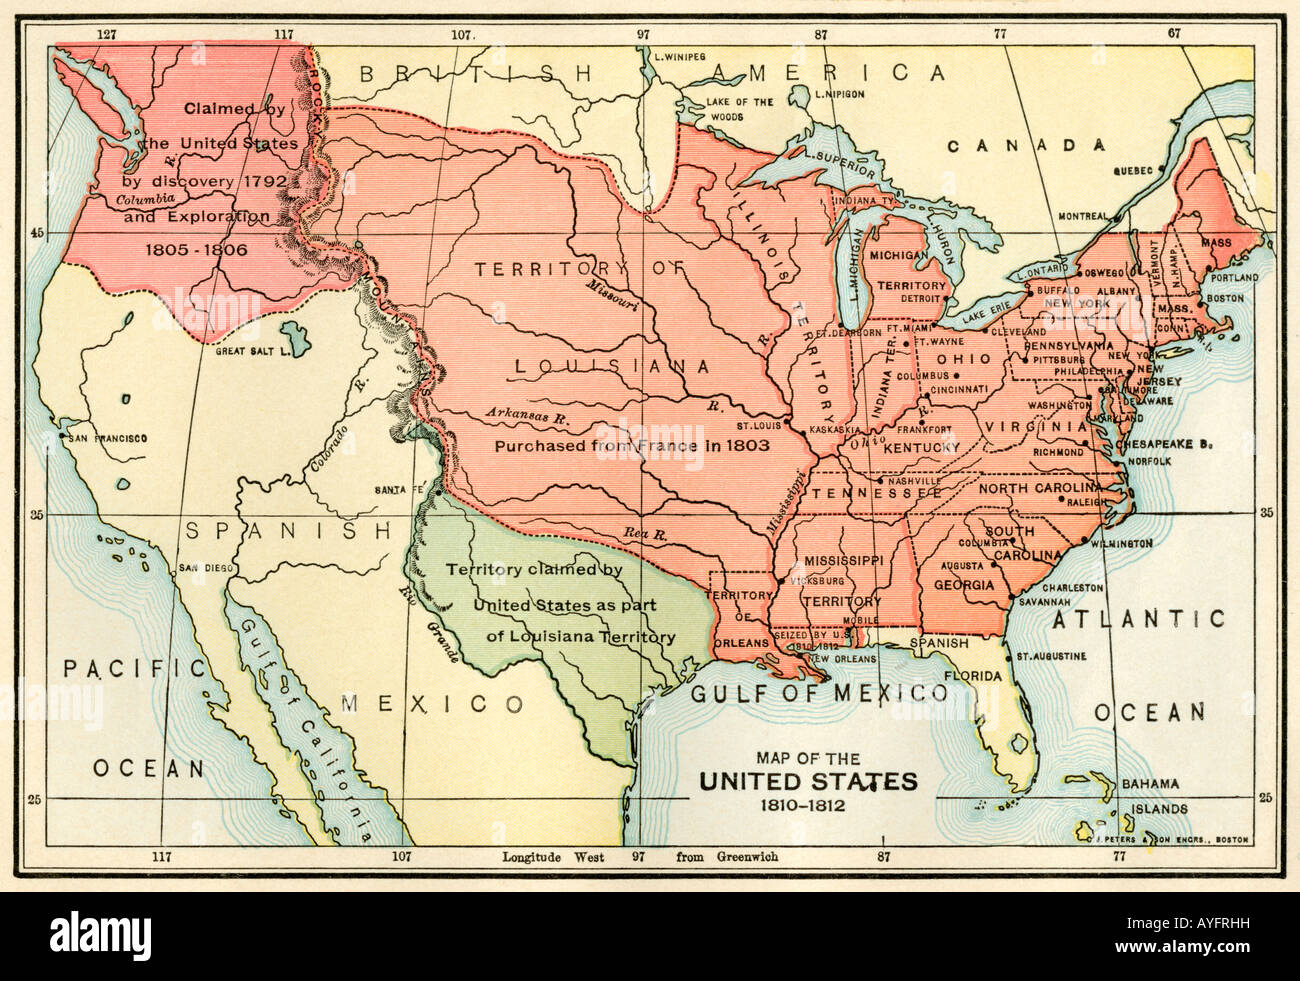 Map of the U S boundary disputes with Spain and Great Britain 1810